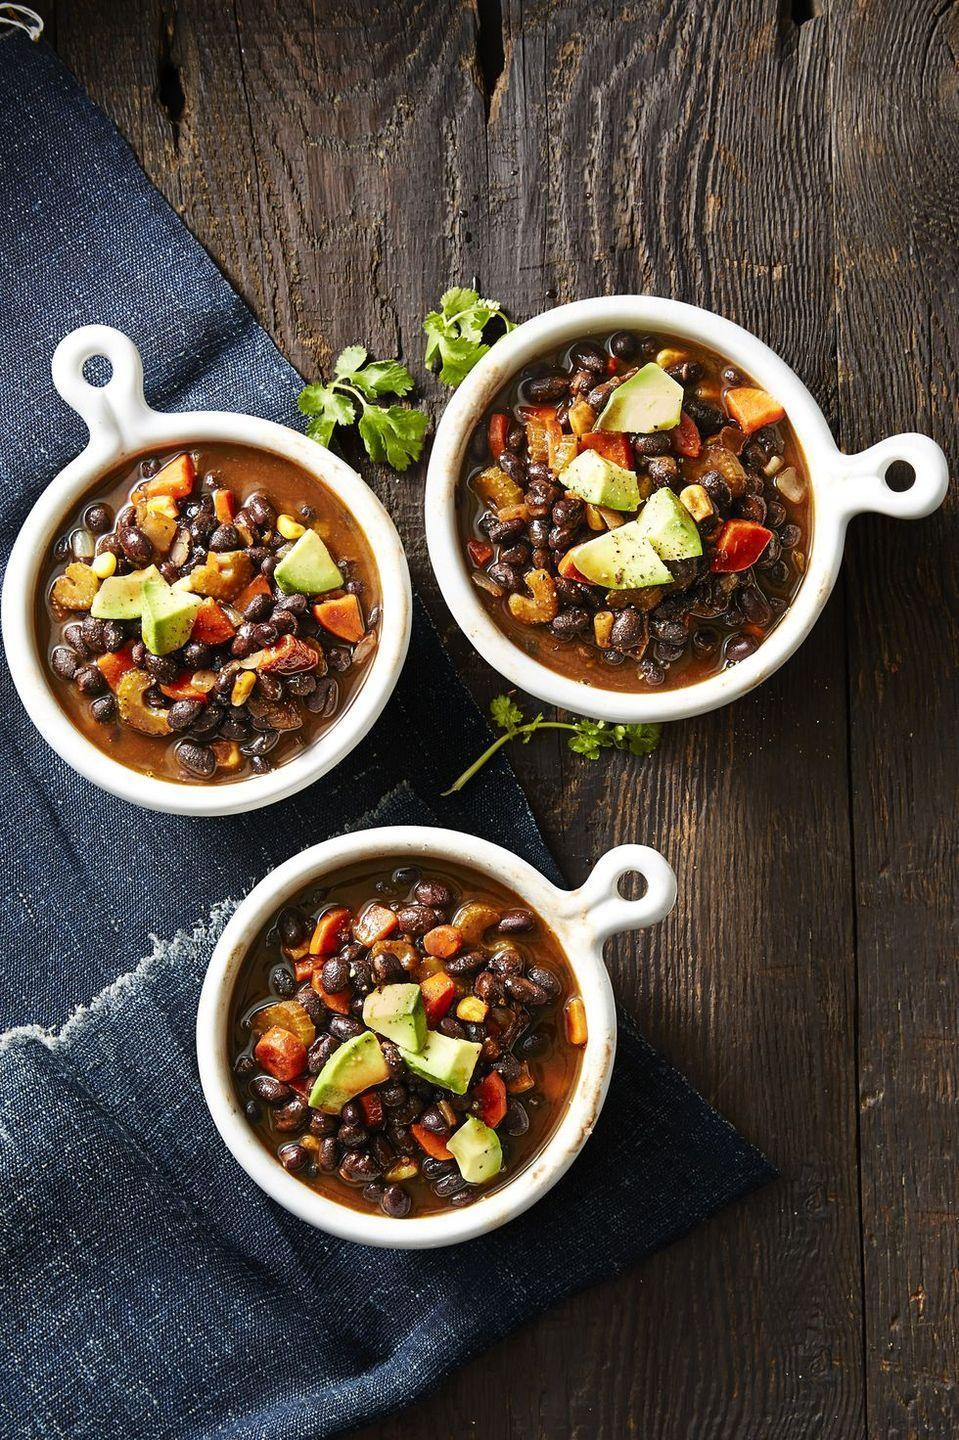 """<p>Vegetables are the true star of this hearty, <a href=""""https://www.goodhousekeeping.com/food-recipes/easy/g27927452/fall-soups/"""" rel=""""nofollow noopener"""" target=""""_blank"""" data-ylk=""""slk:healthy soup recipe"""" class=""""link rapid-noclick-resp"""">healthy soup recipe</a>, making it a perfect option for your vegan friends.</p><p><em><a href=""""https://www.goodhousekeeping.com/food-recipes/healthy/a42397/smoky-vegan-black-bean-soup-recipe/"""" rel=""""nofollow noopener"""" target=""""_blank"""" data-ylk=""""slk:Get the recipe for Vegan Black Bean Soup »"""" class=""""link rapid-noclick-resp"""">Get the recipe for Vegan Black Bean Soup »</a></em></p>"""